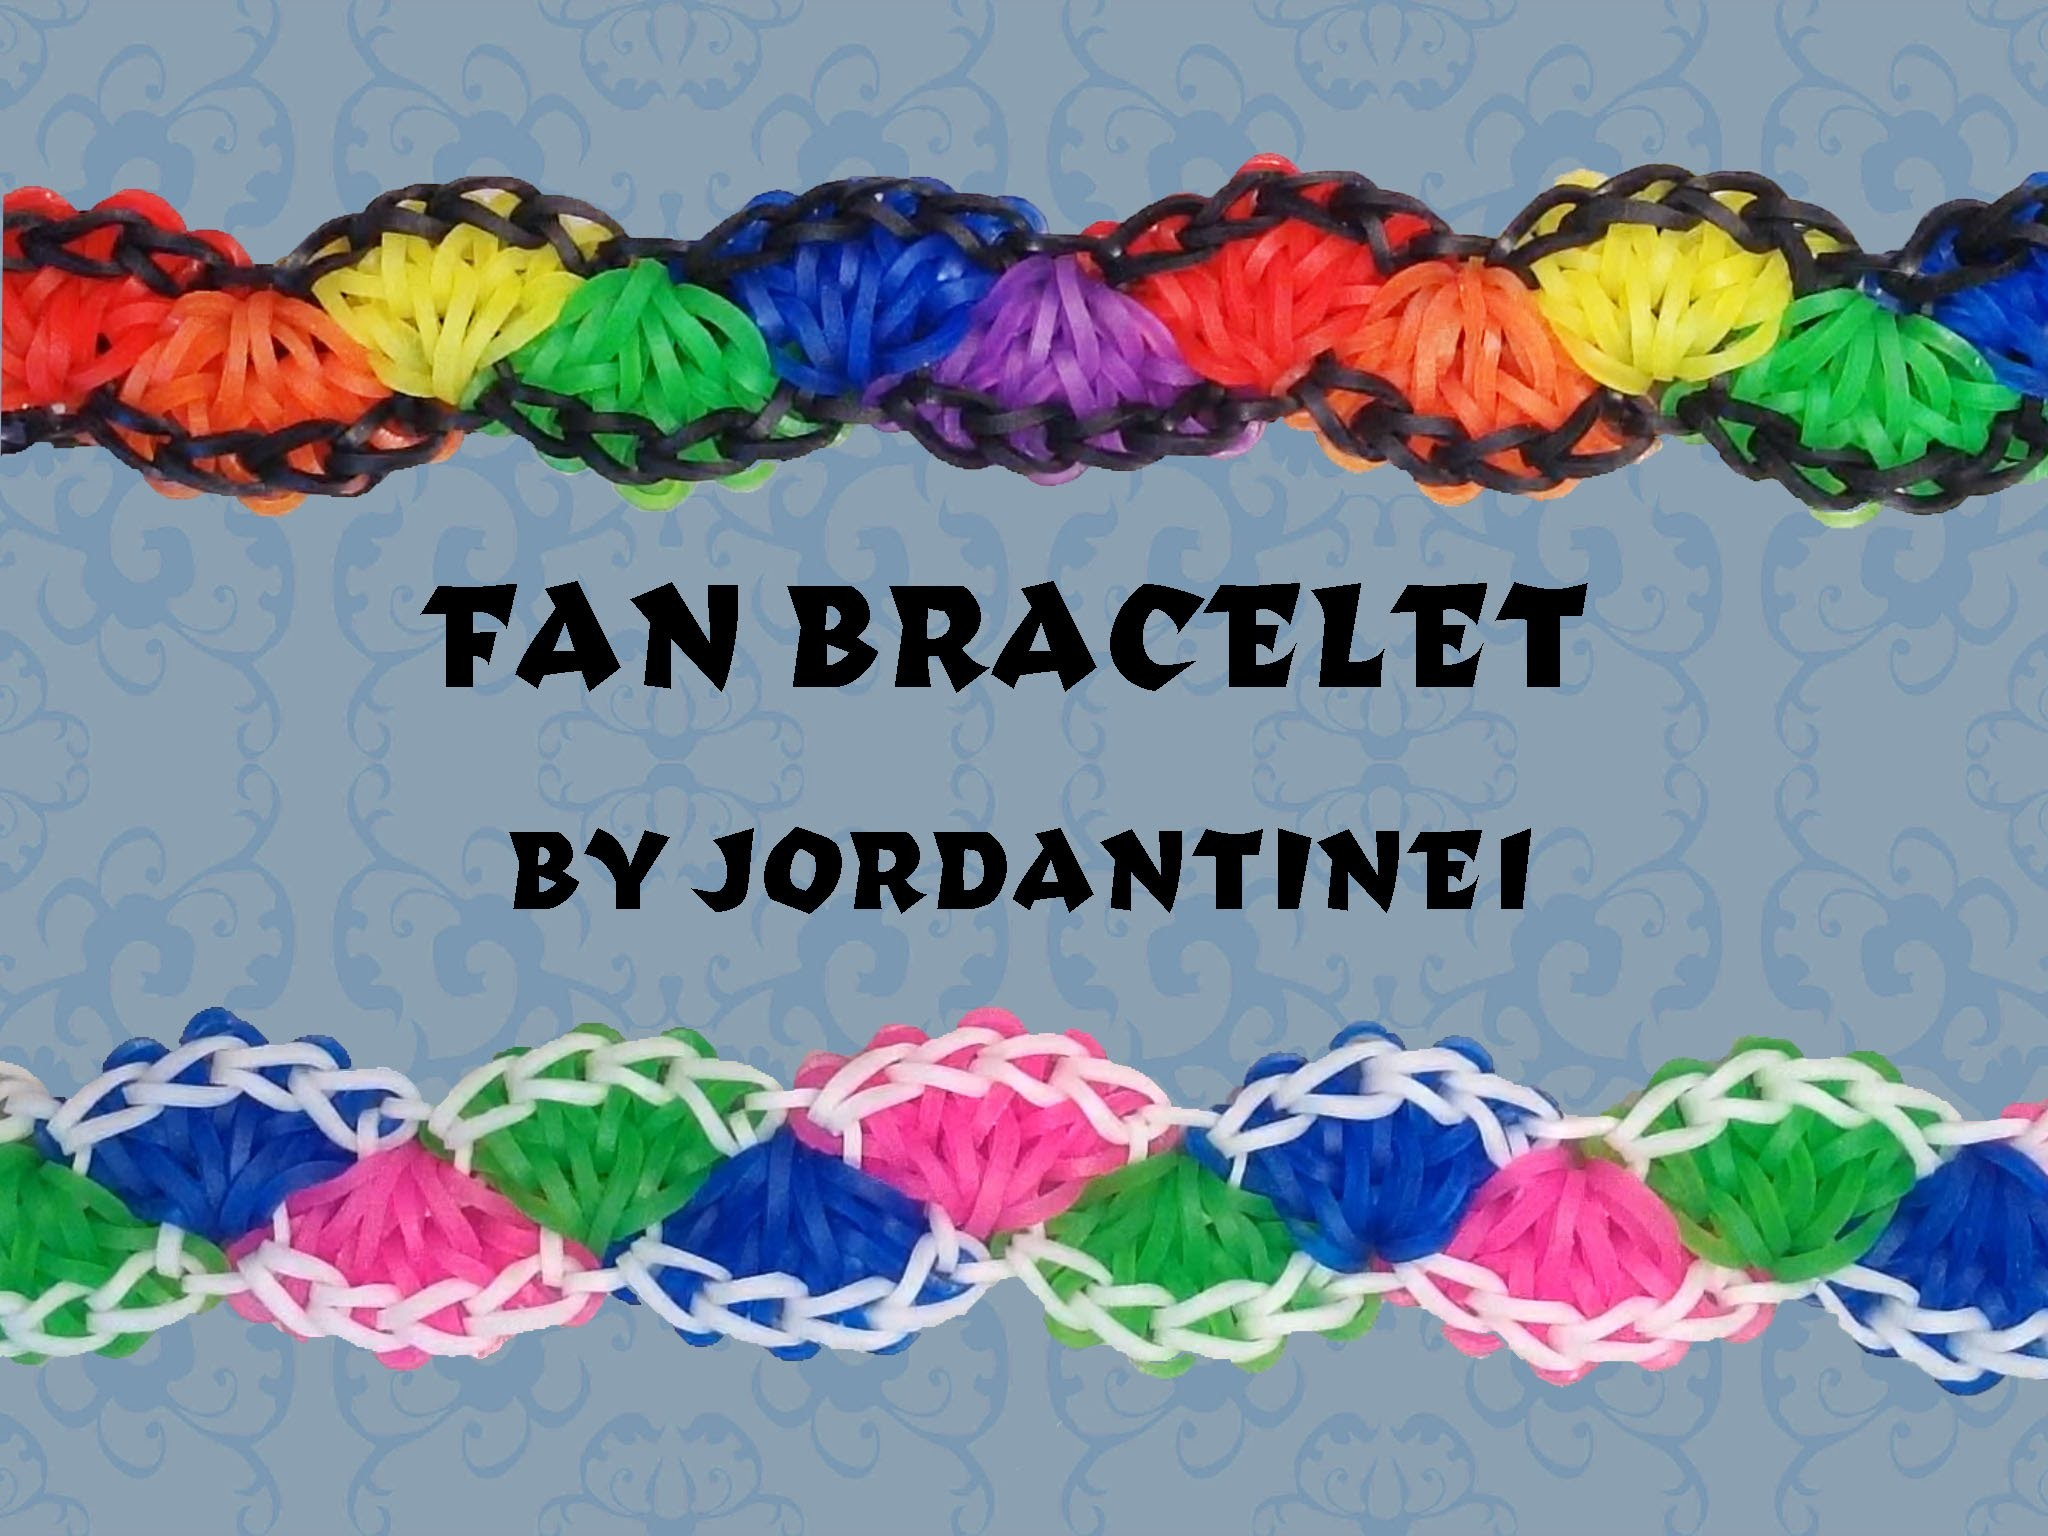 New Fan Bracelet - Rainbow Loom or Monster Tail or Finger Loom